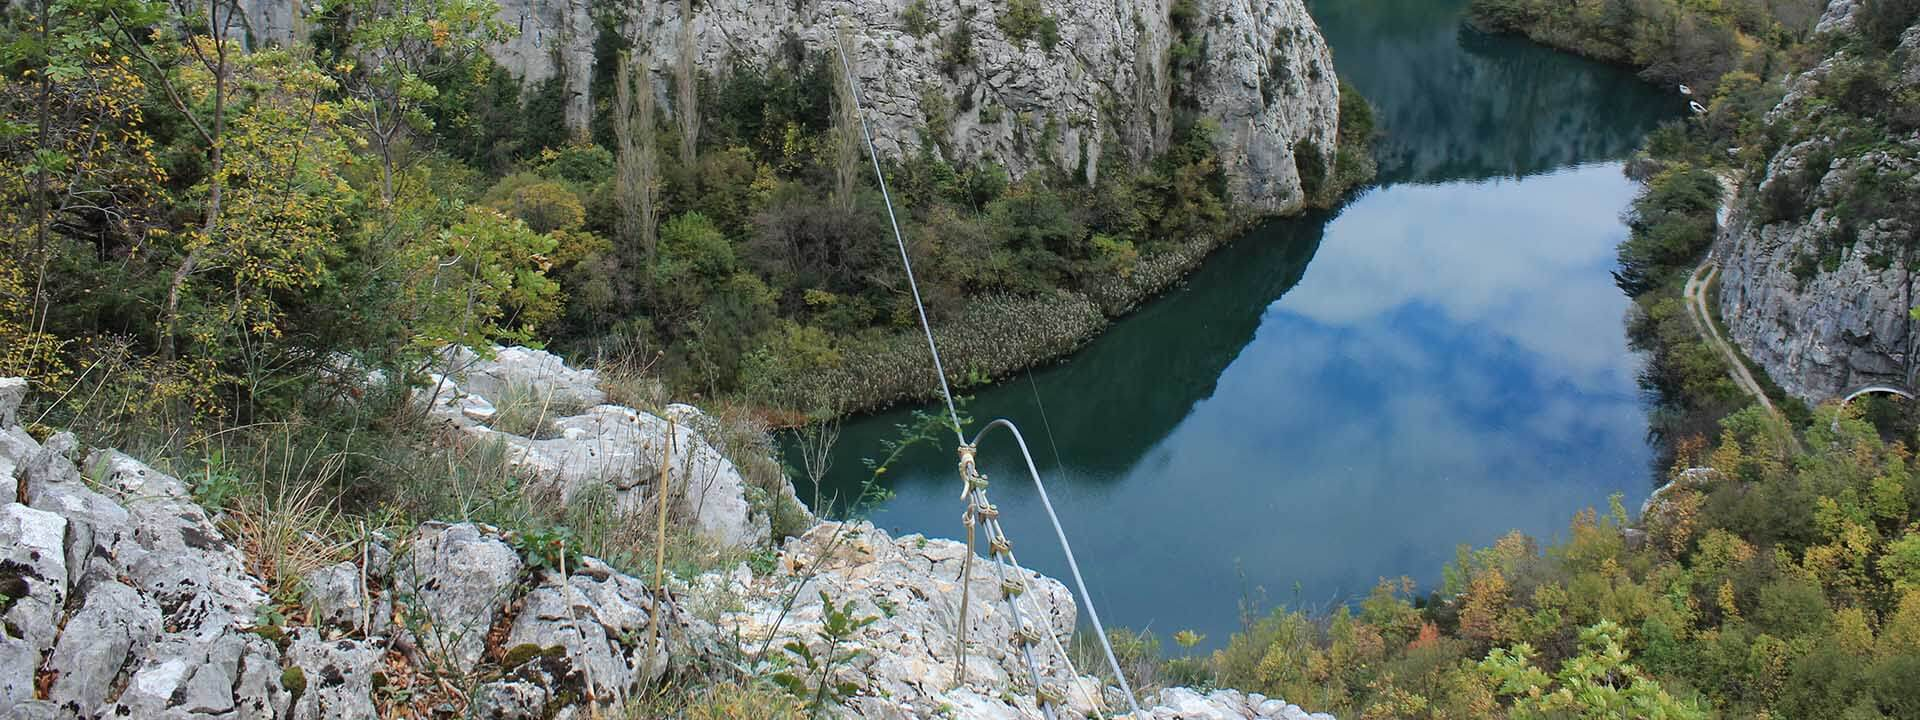 Omis Zip Line Daily TM Adventure Slide 3